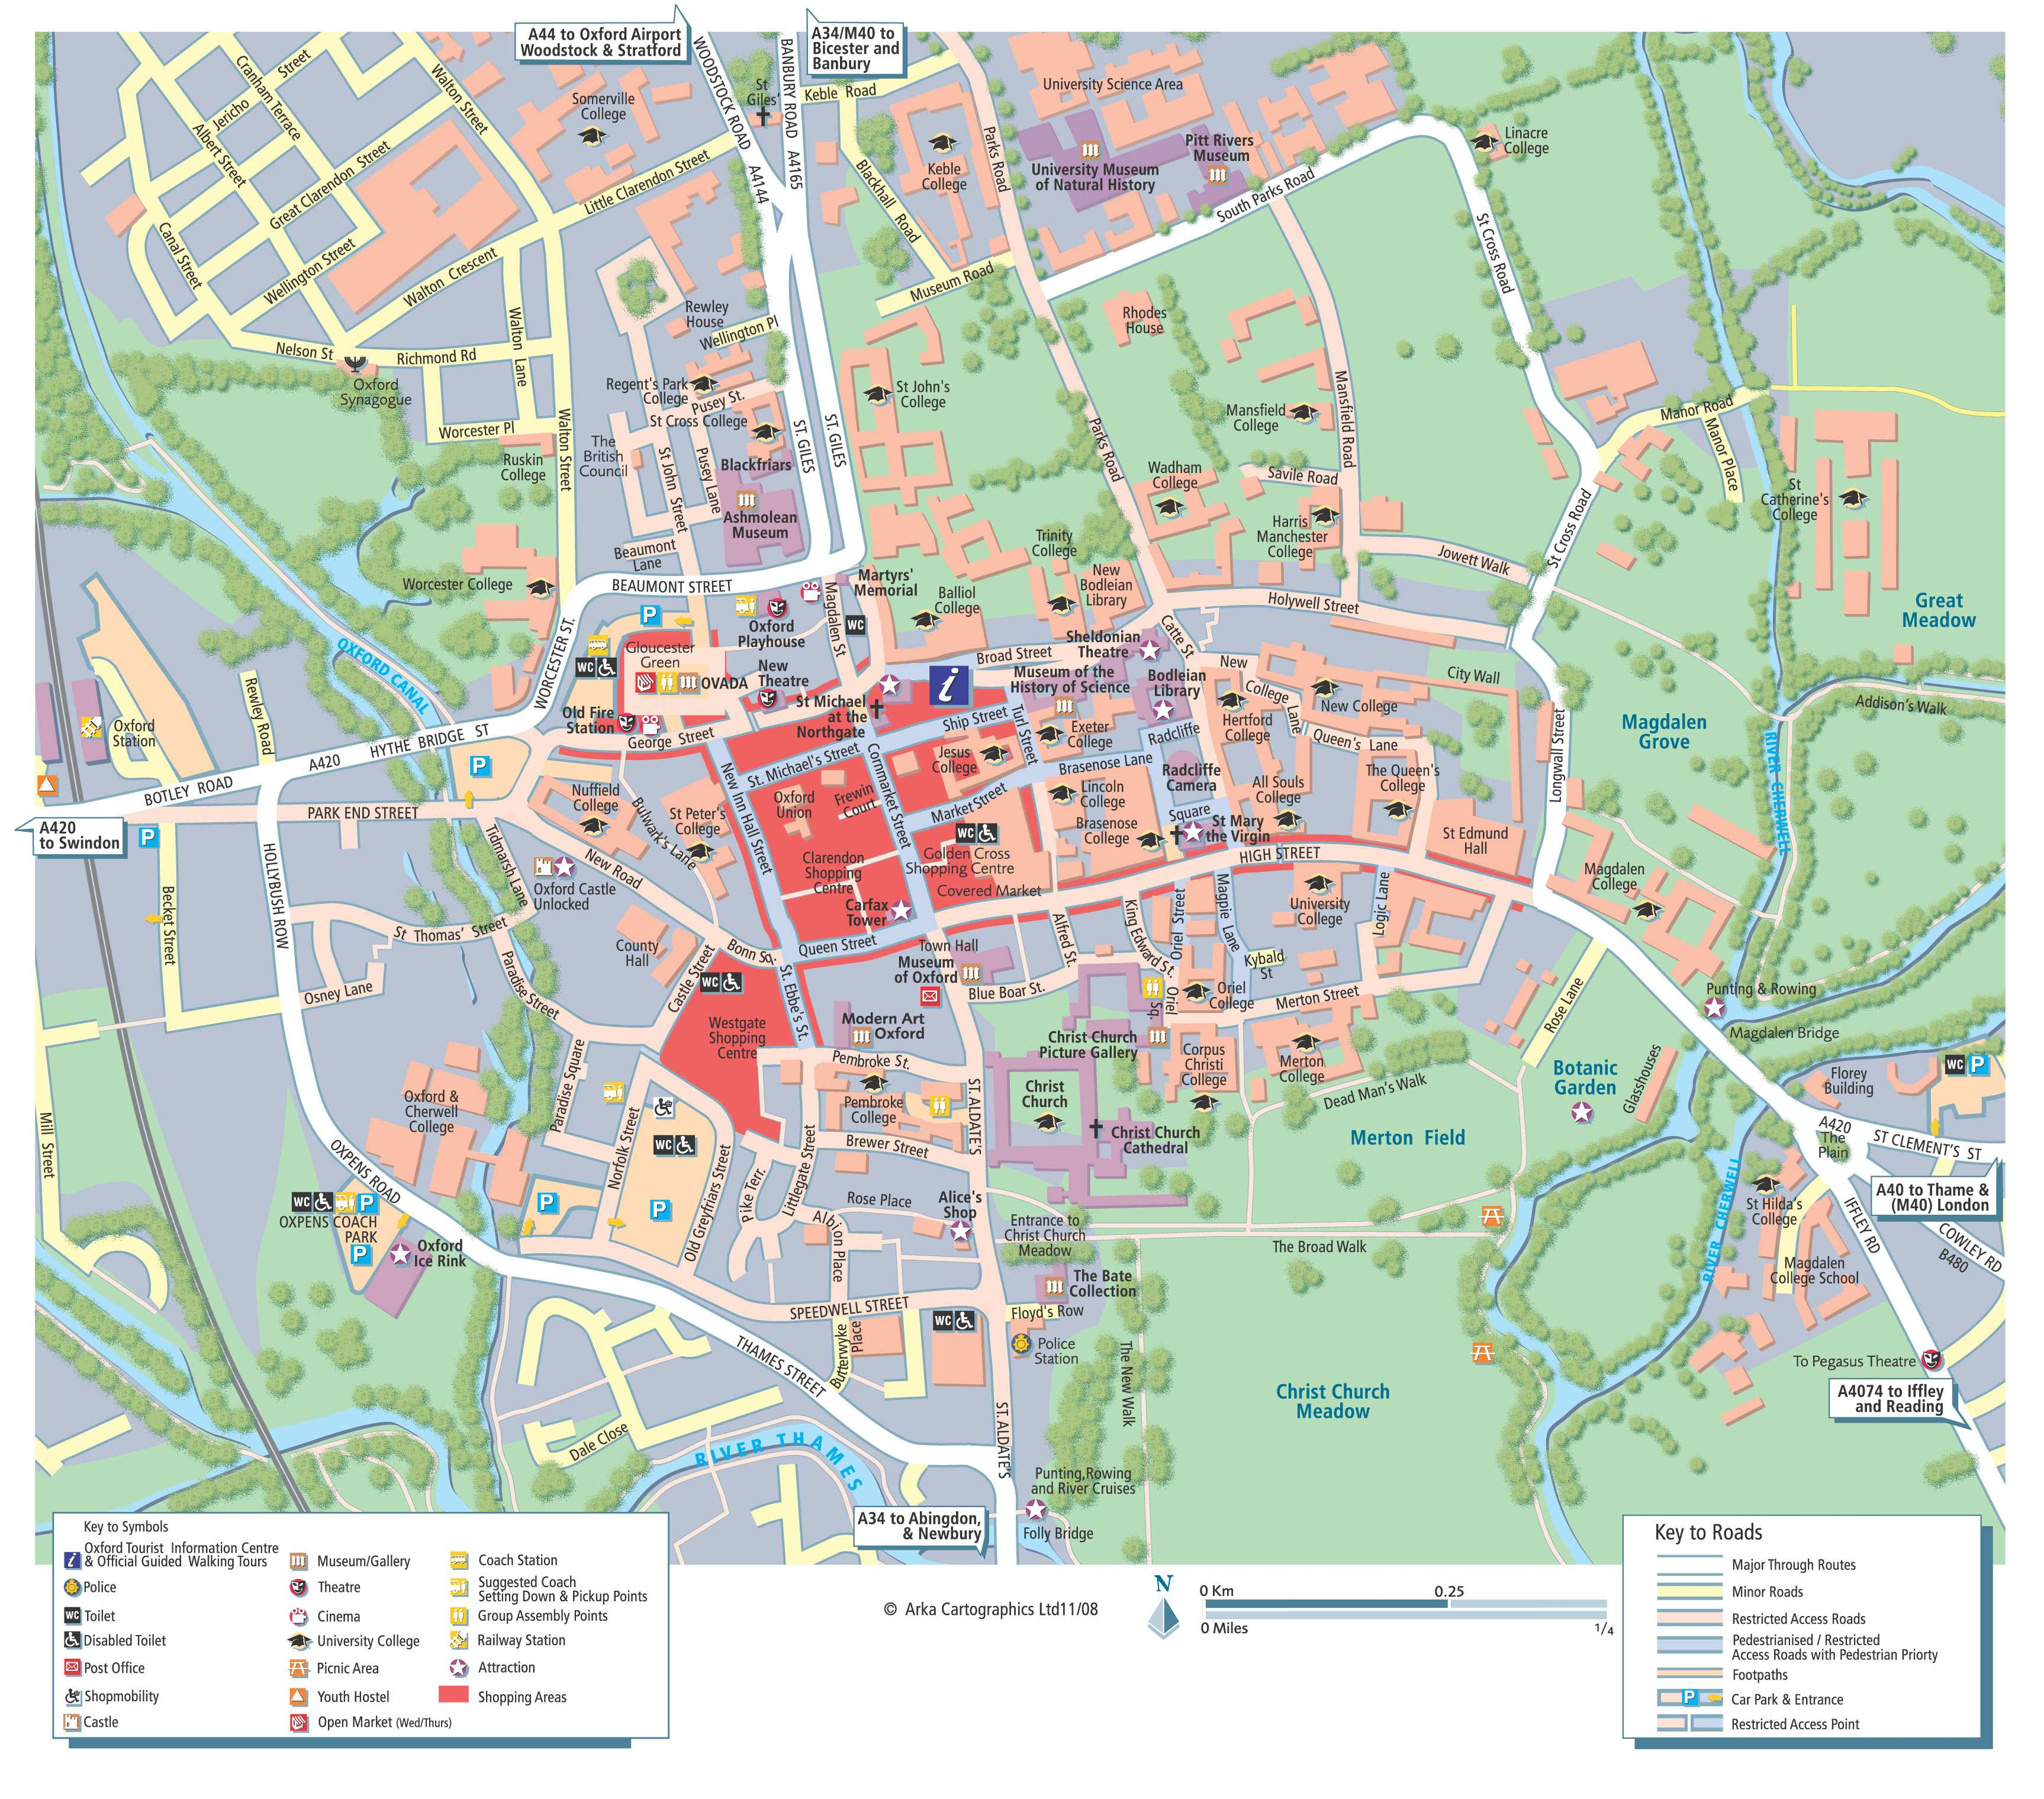 Oxford City Centre Map Large Oxford Maps for Free Download and Print | High Resolution